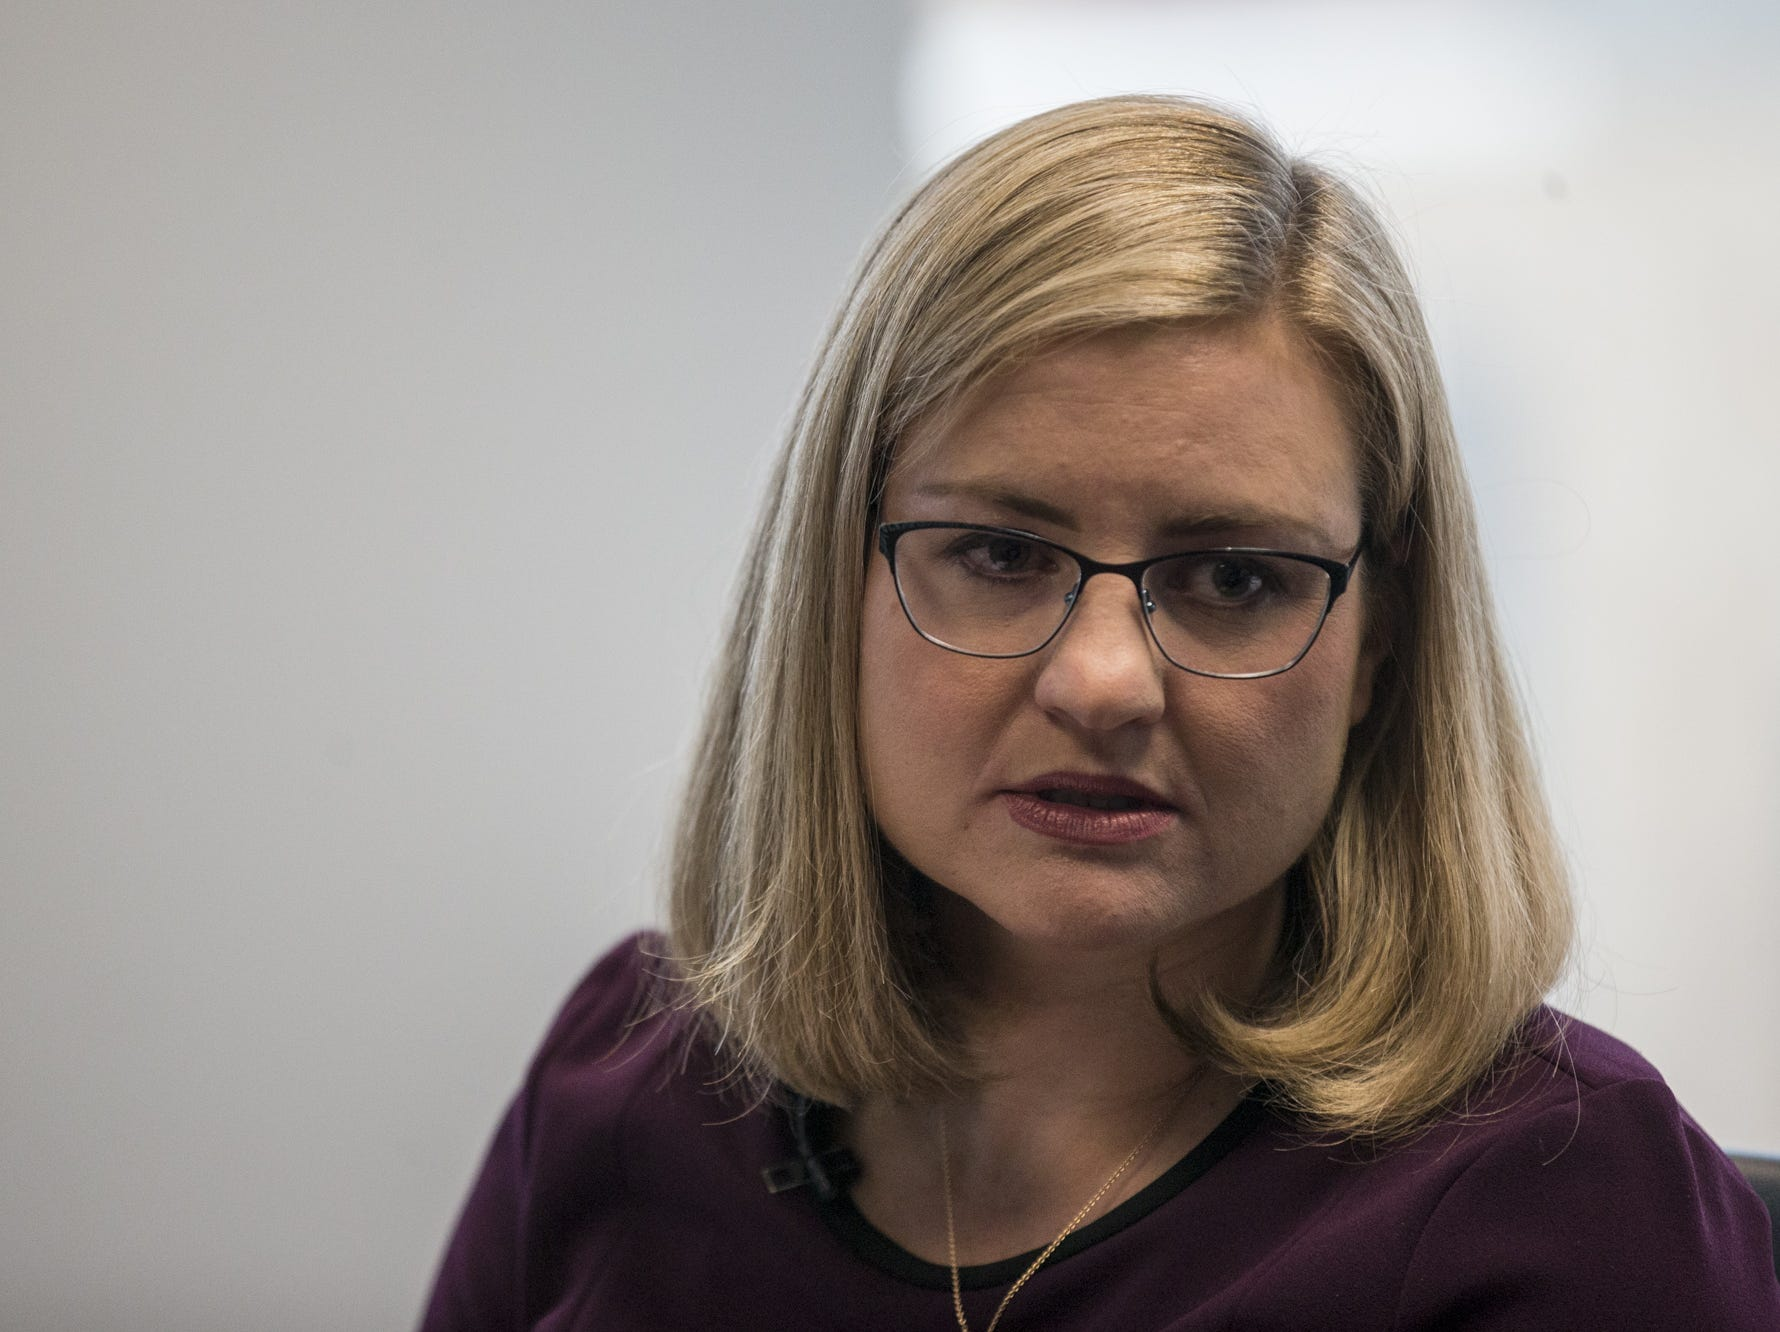 Phoenix mayoral candidate Kate Gallego speaks during a meeting with the editorial board on Thursday, Feb. 14, 2019, at The Arizona Republic in Phoenix.